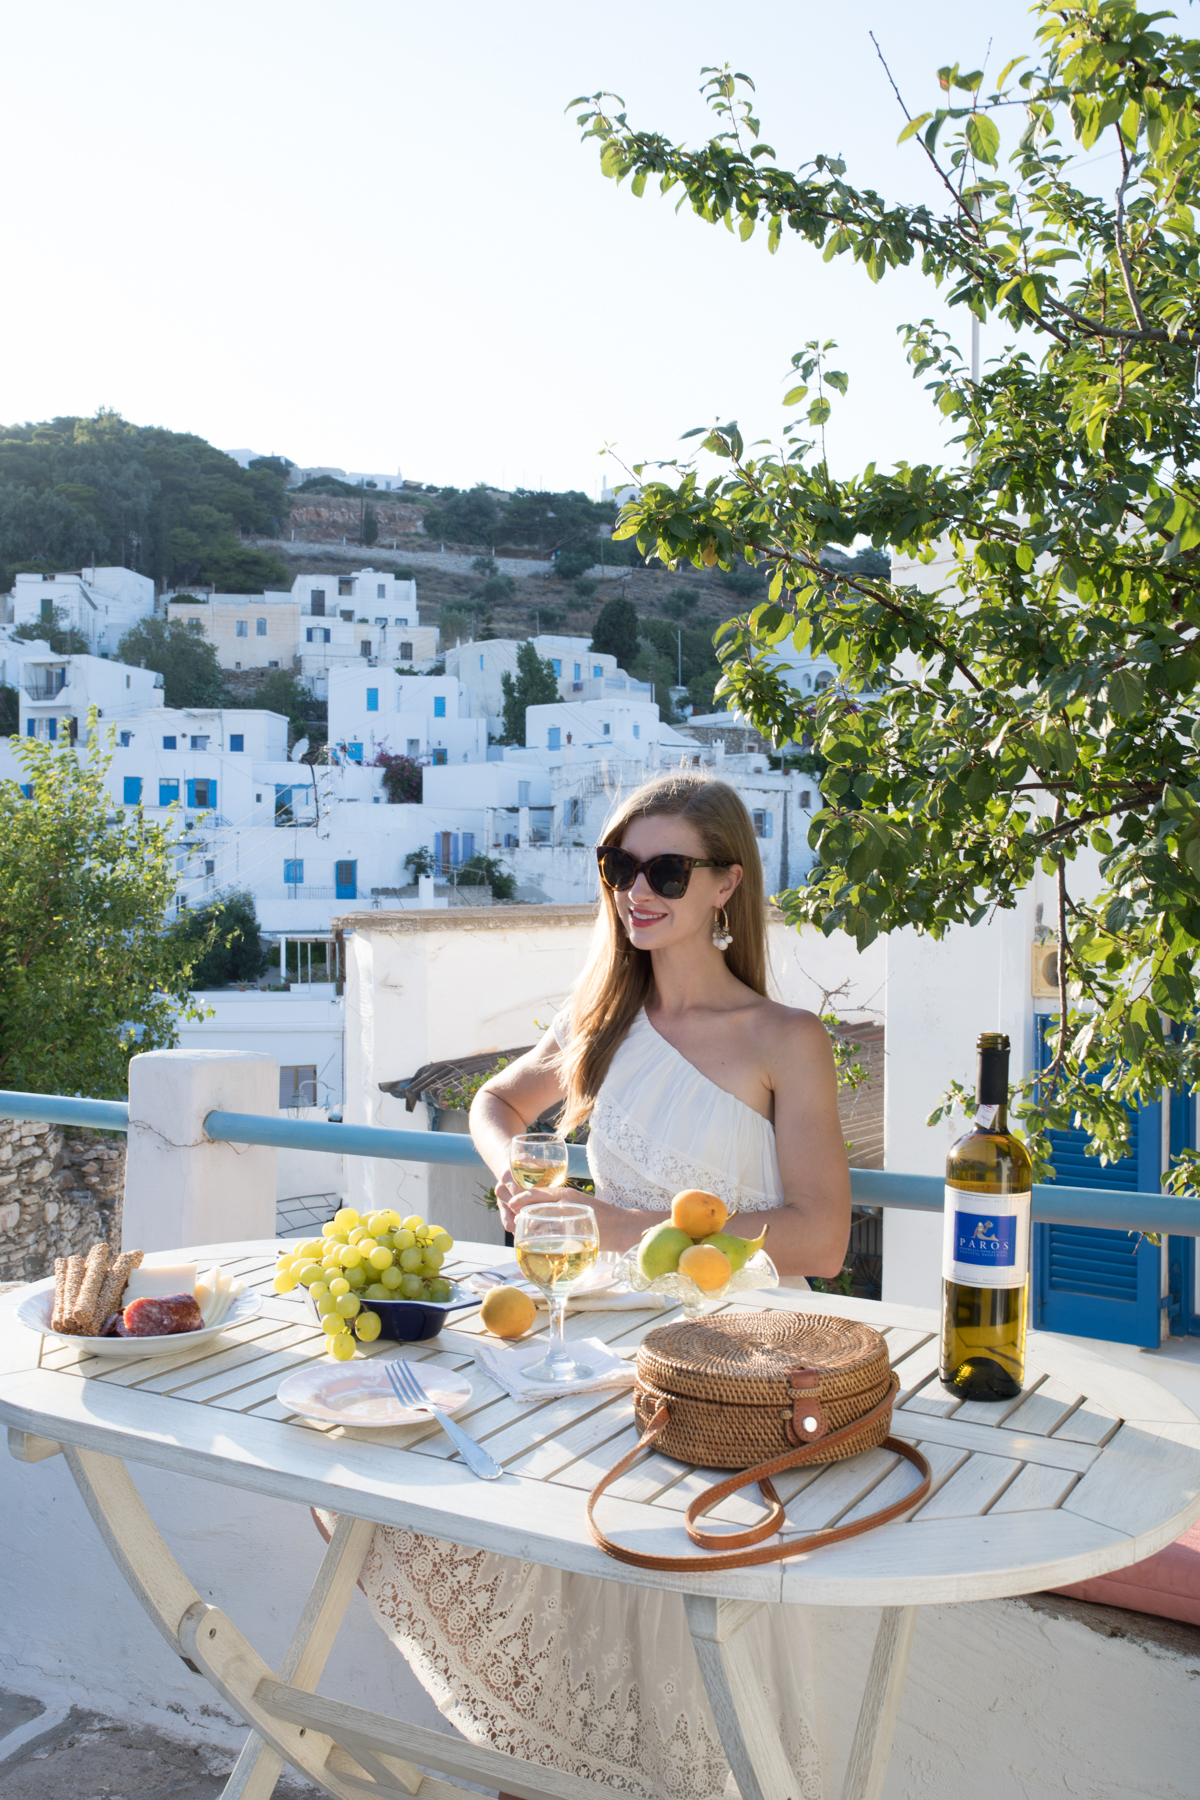 Stacie Flinner Travel Guide Paros Greece-50